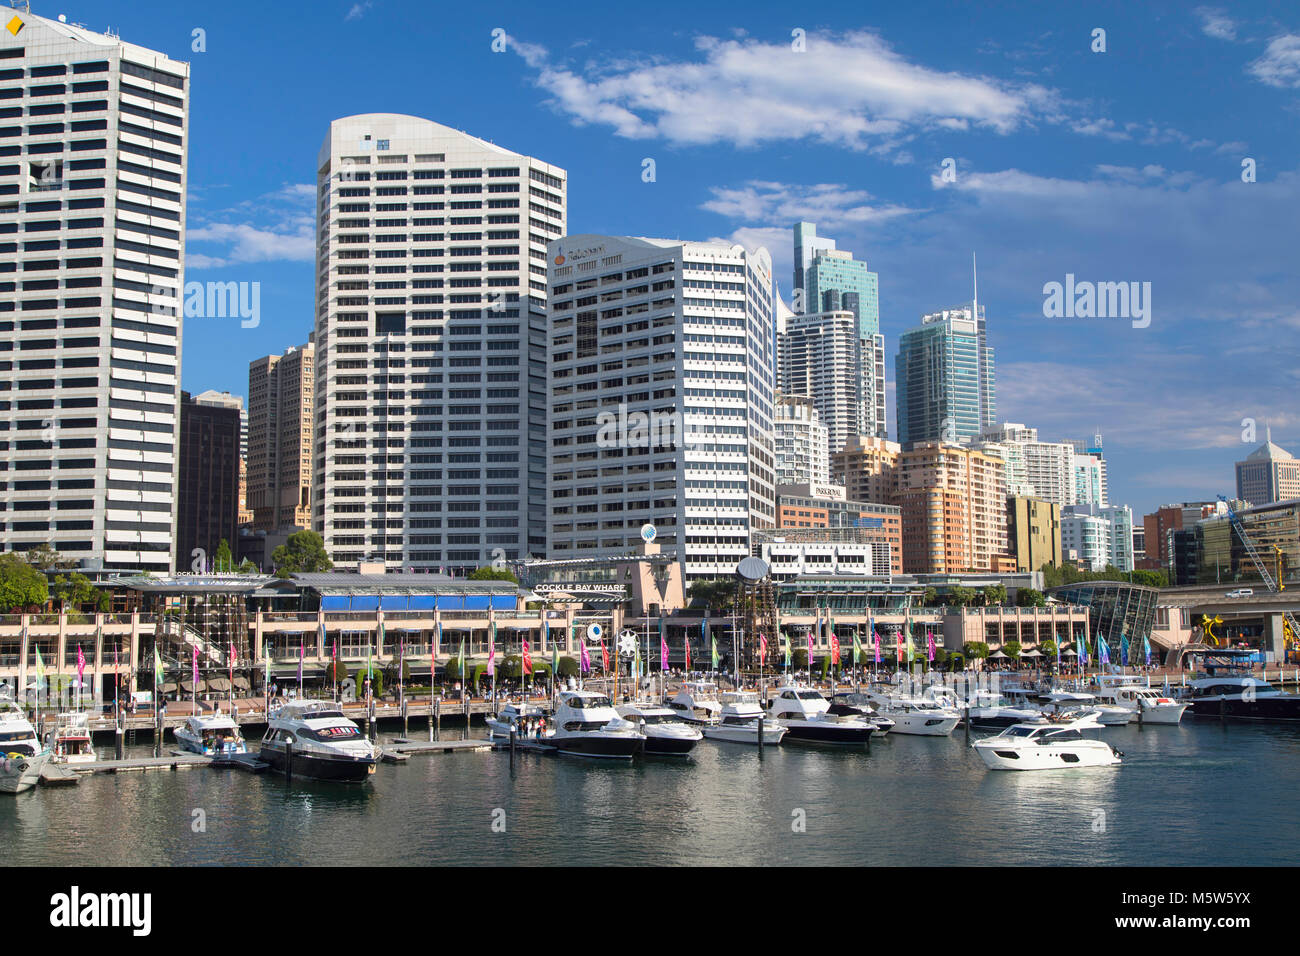 Darling Harbour, Sydney, New South Wales, Australia Photo Stock